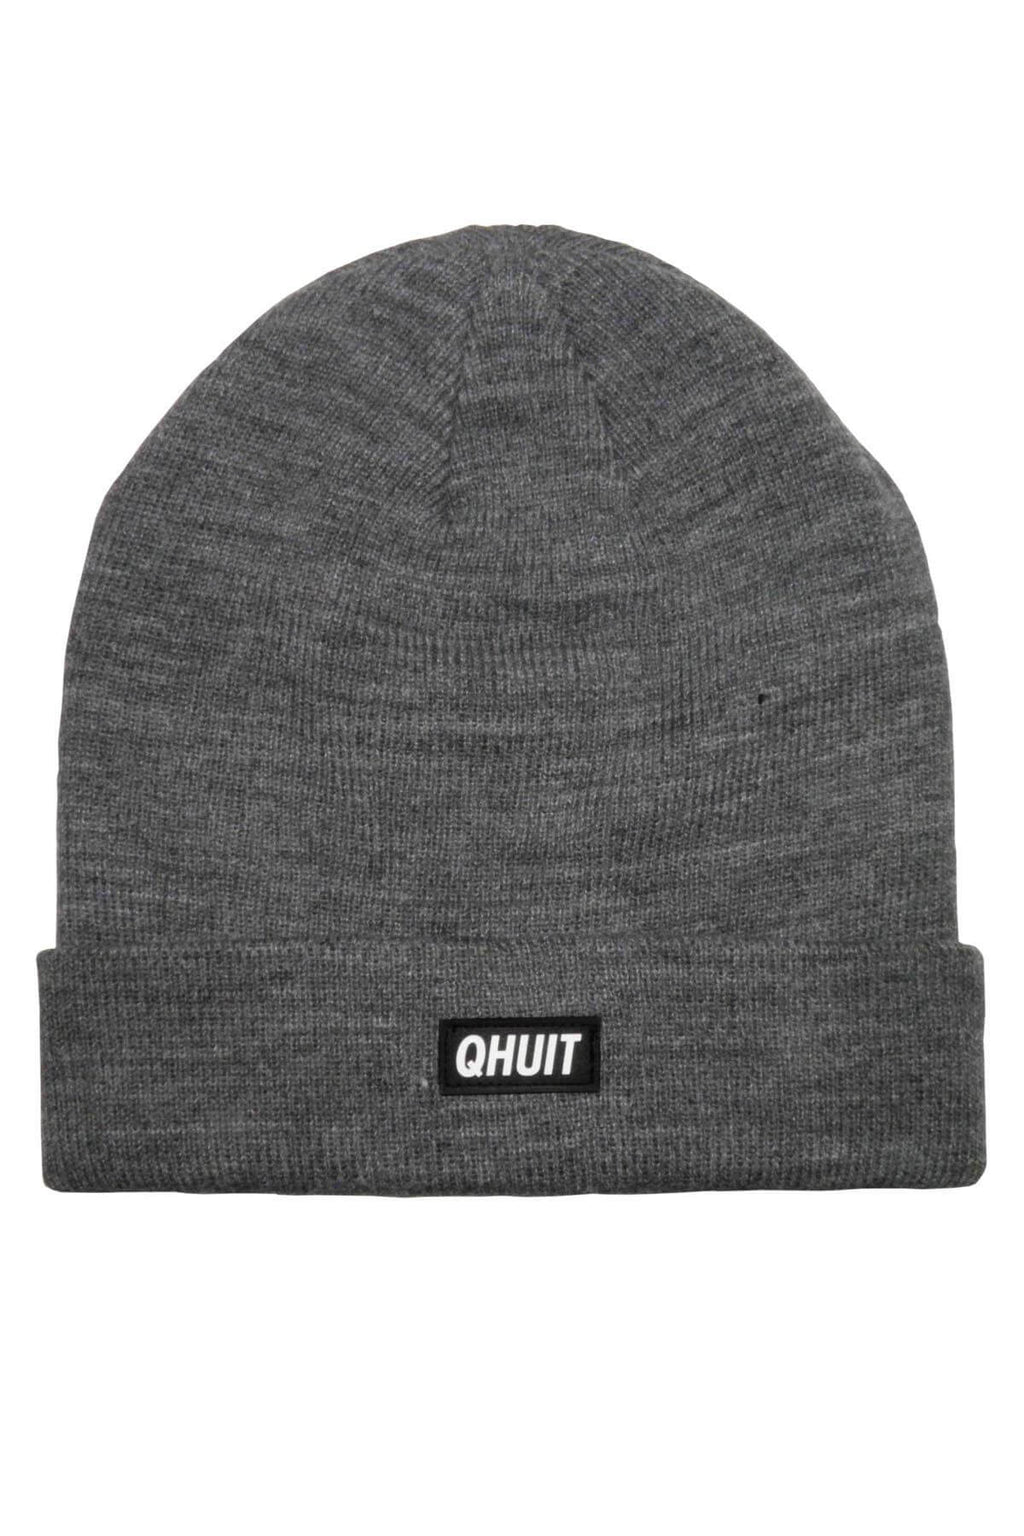 QHUIT, Beanie heather grey